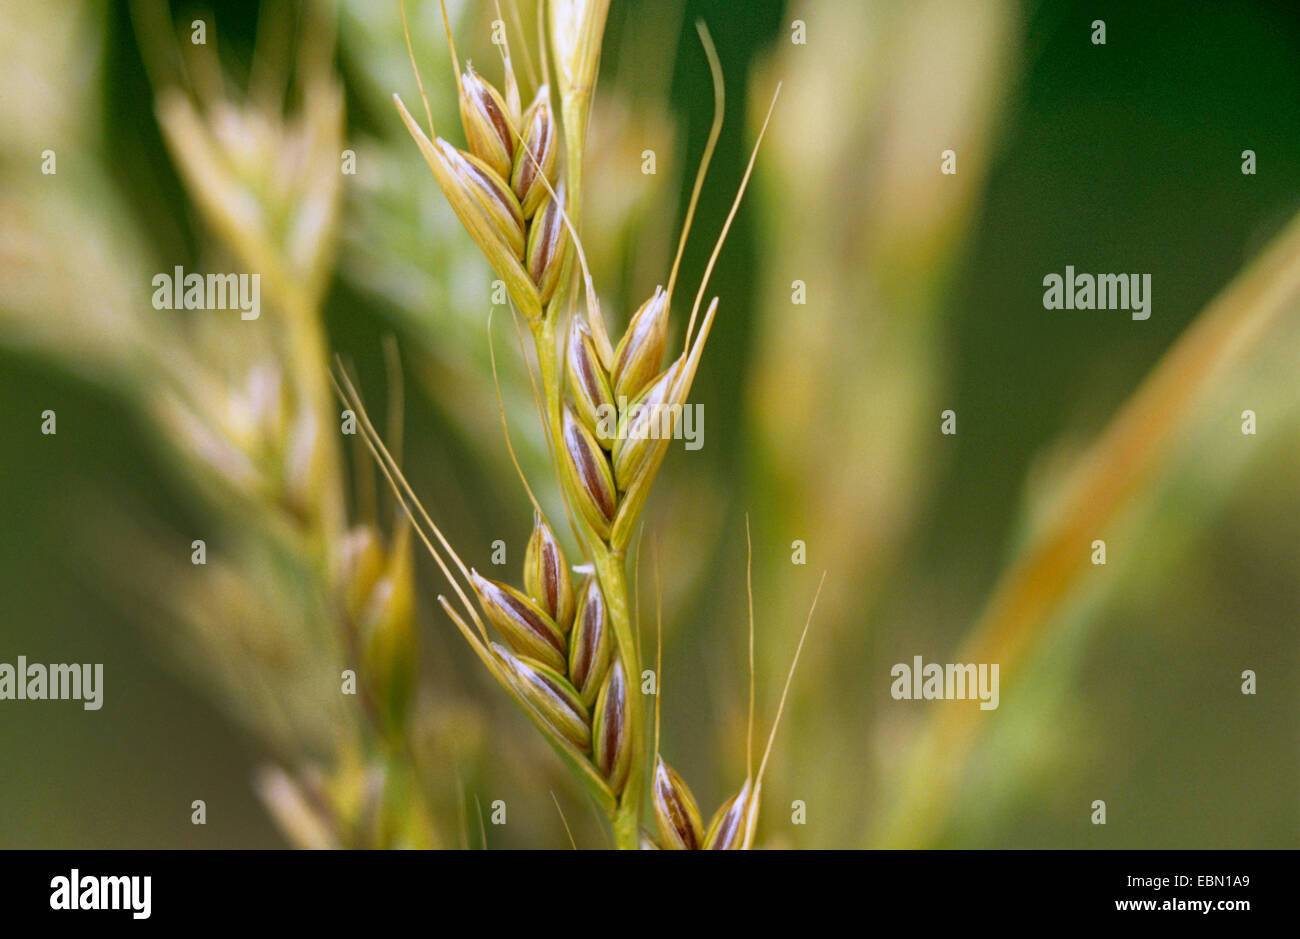 bearded darnel, poison rye-grass (Lolium temulentum), spike, Germany - Stock Image